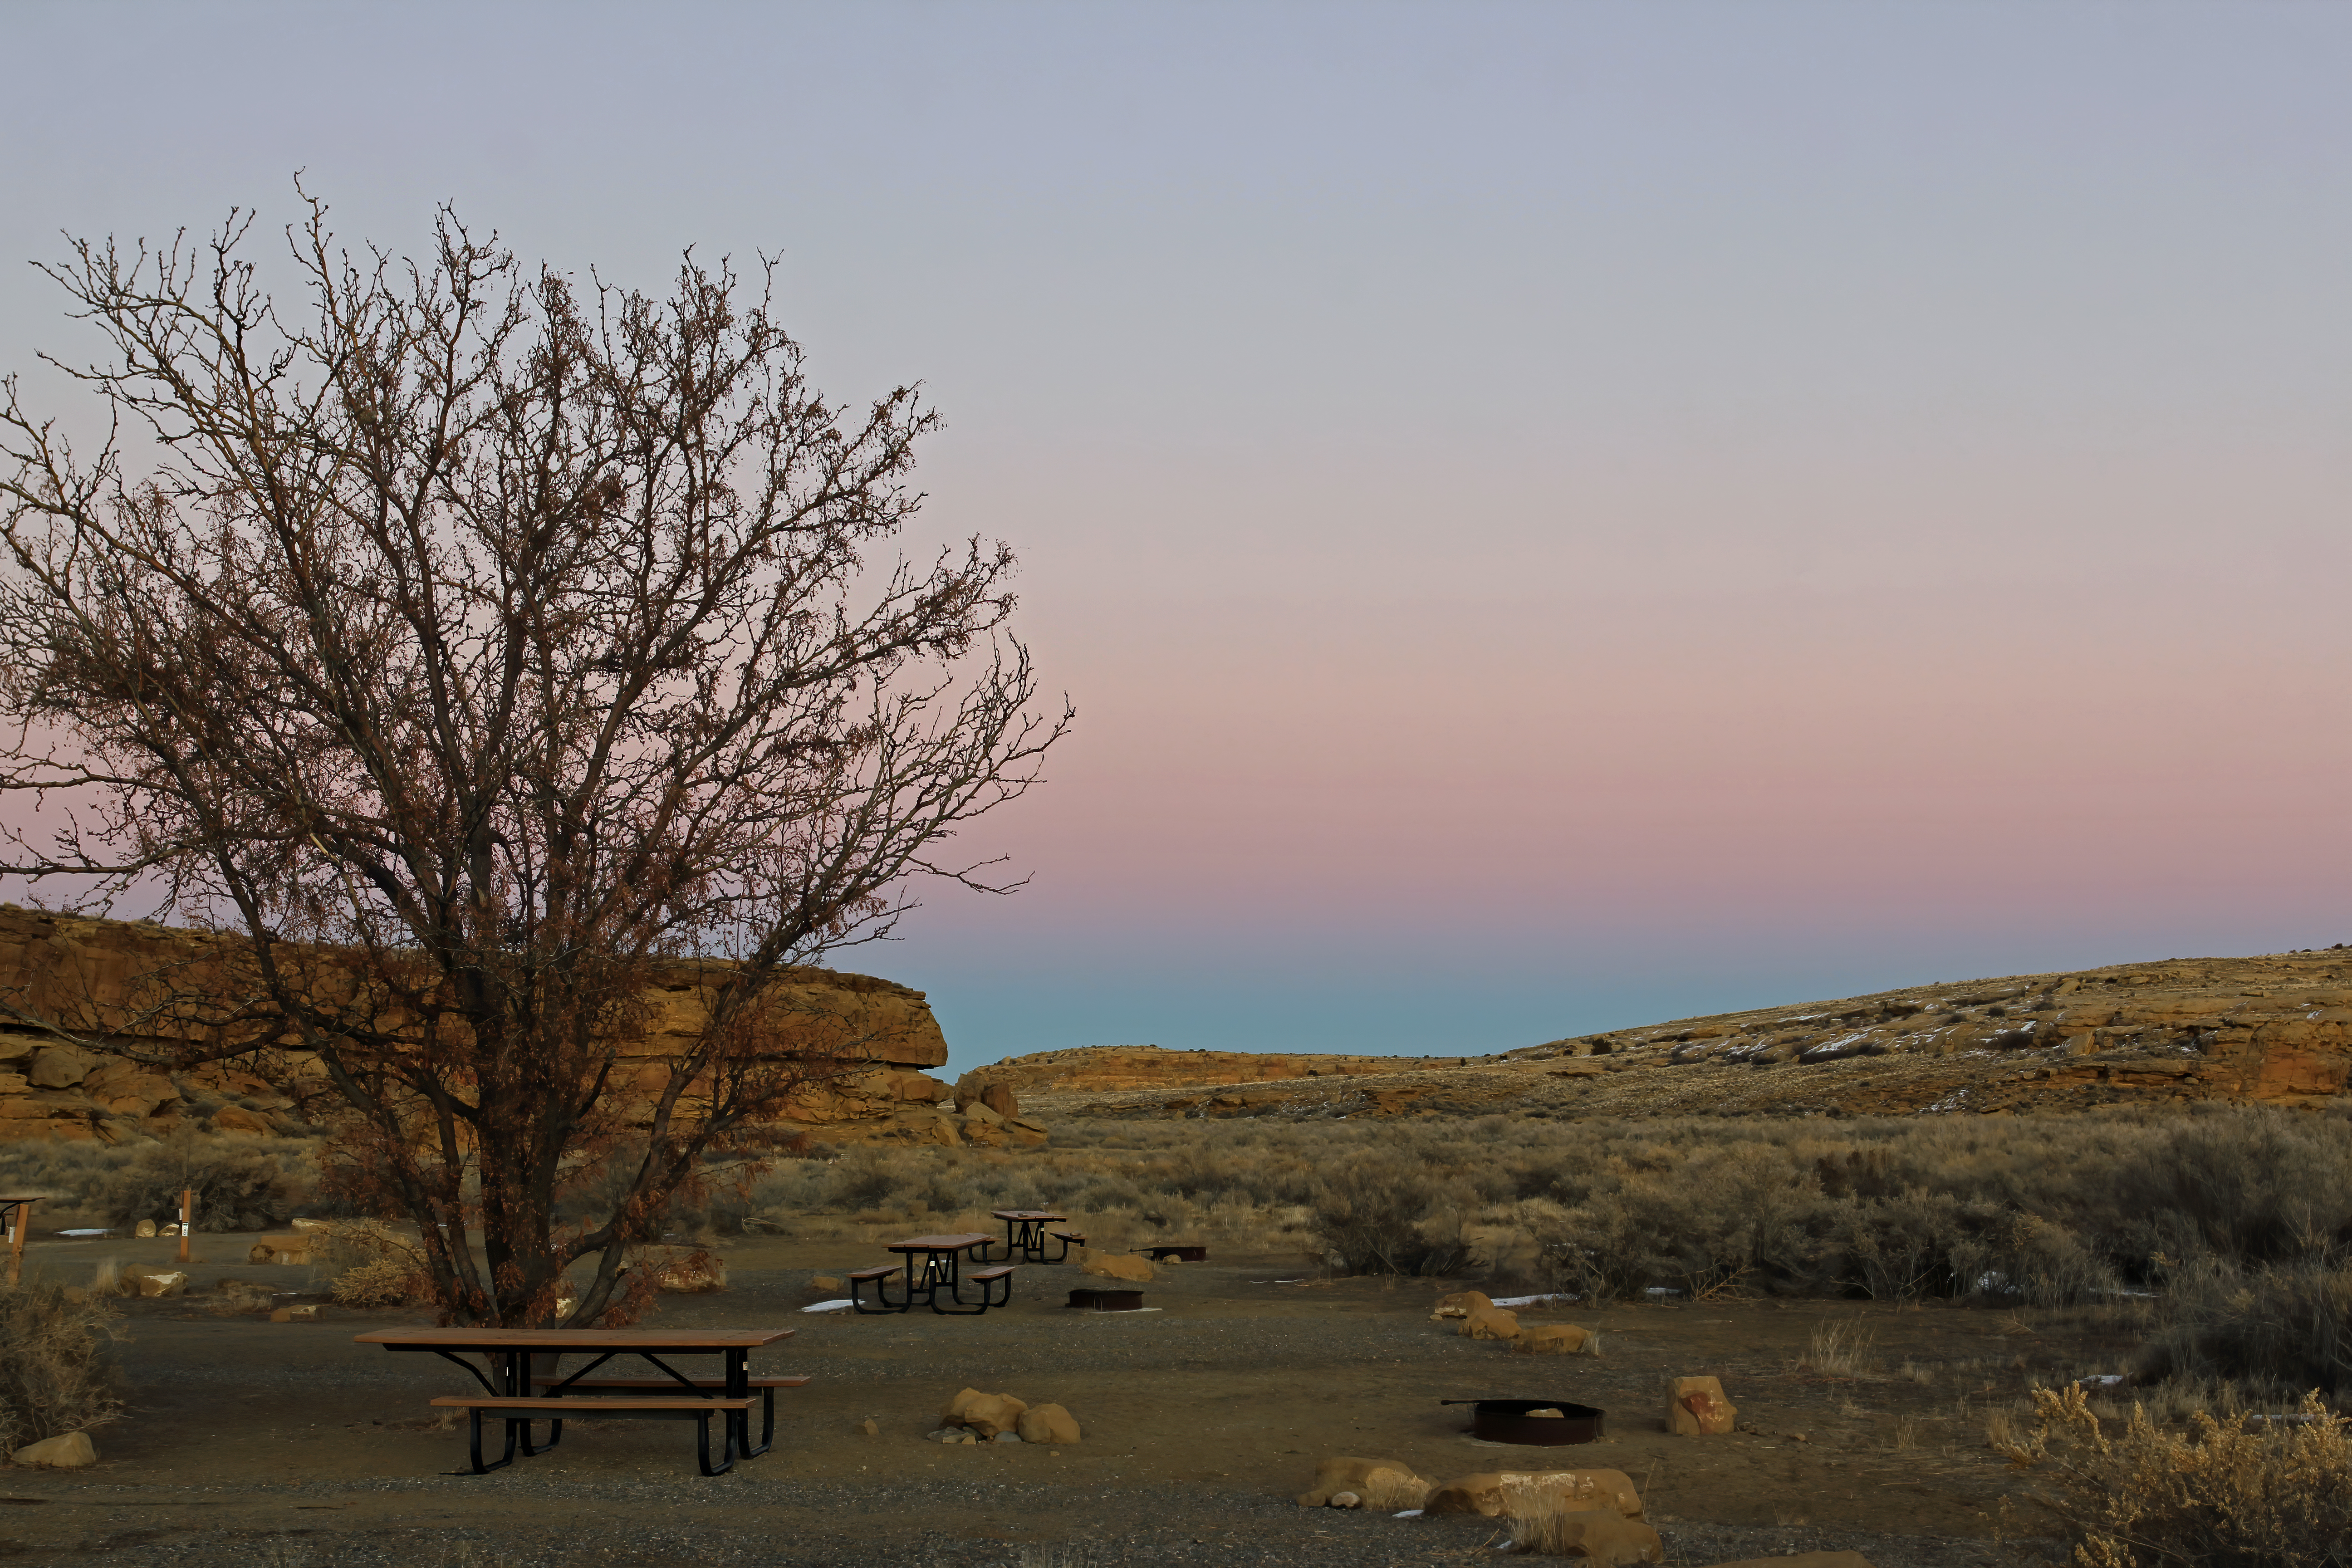 Sunset of the Chaco Canyon from the Gallo campground